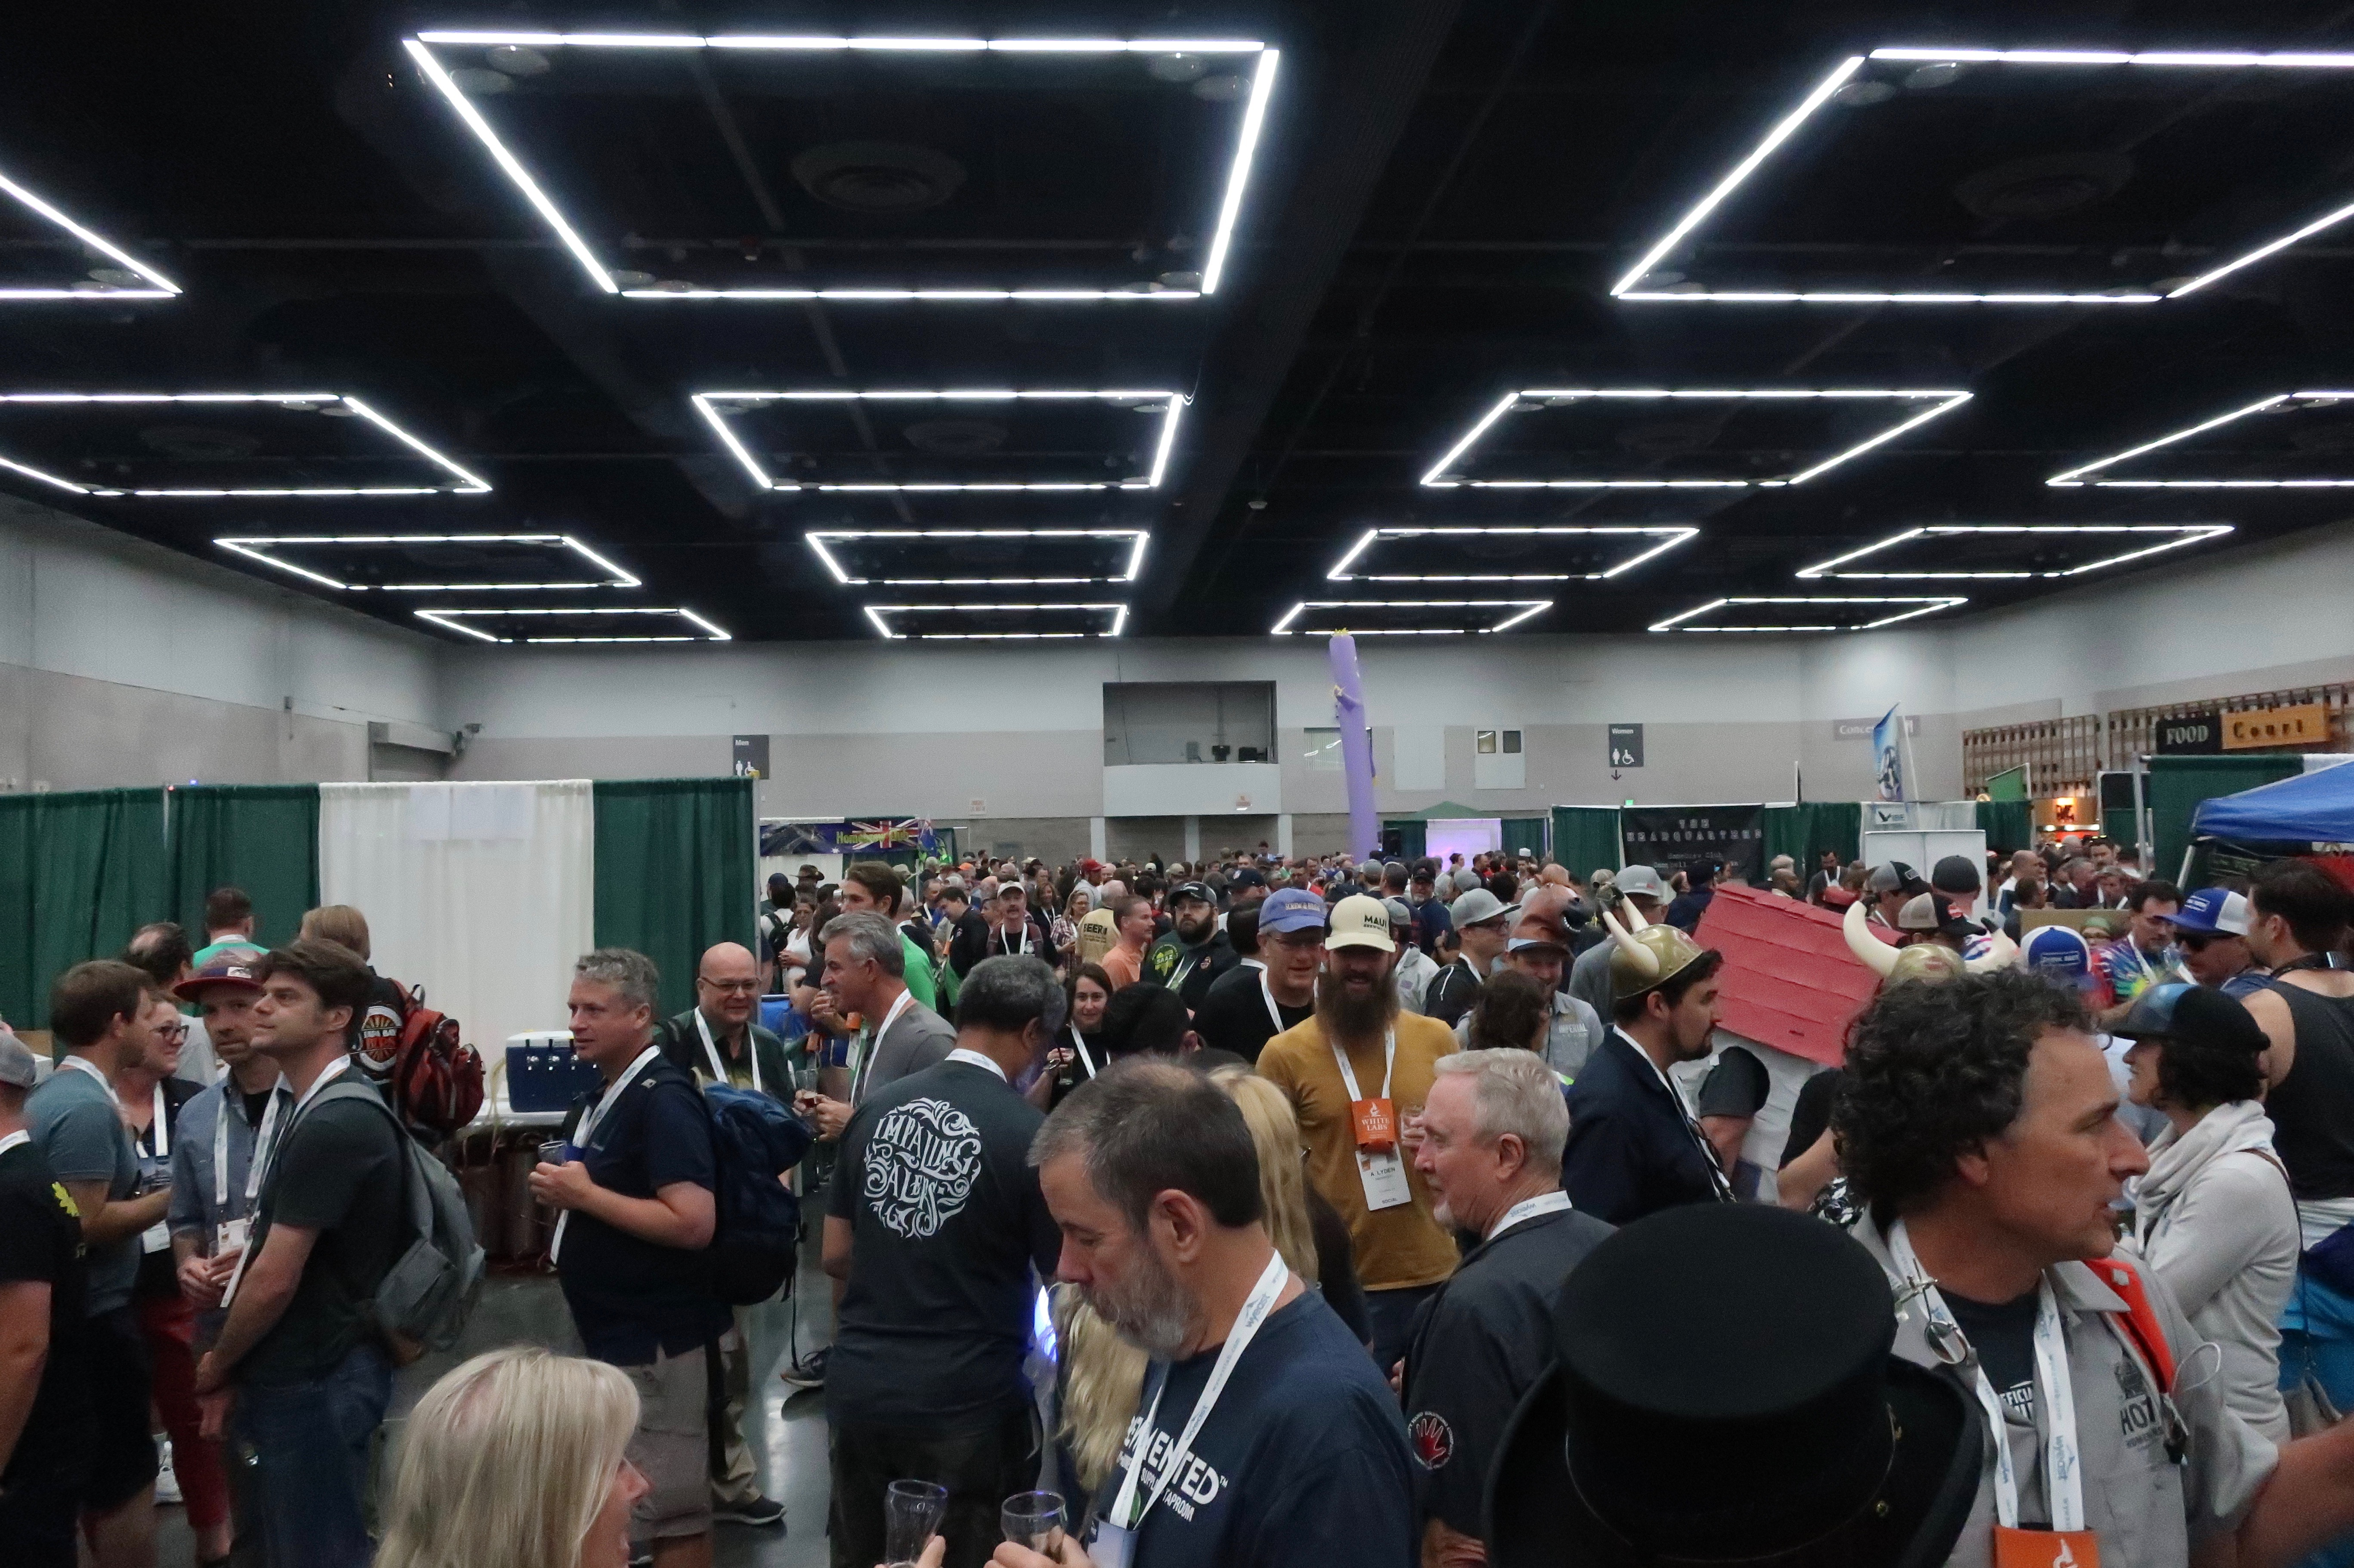 The crowd during Club Night at Homebrew Con 2018.